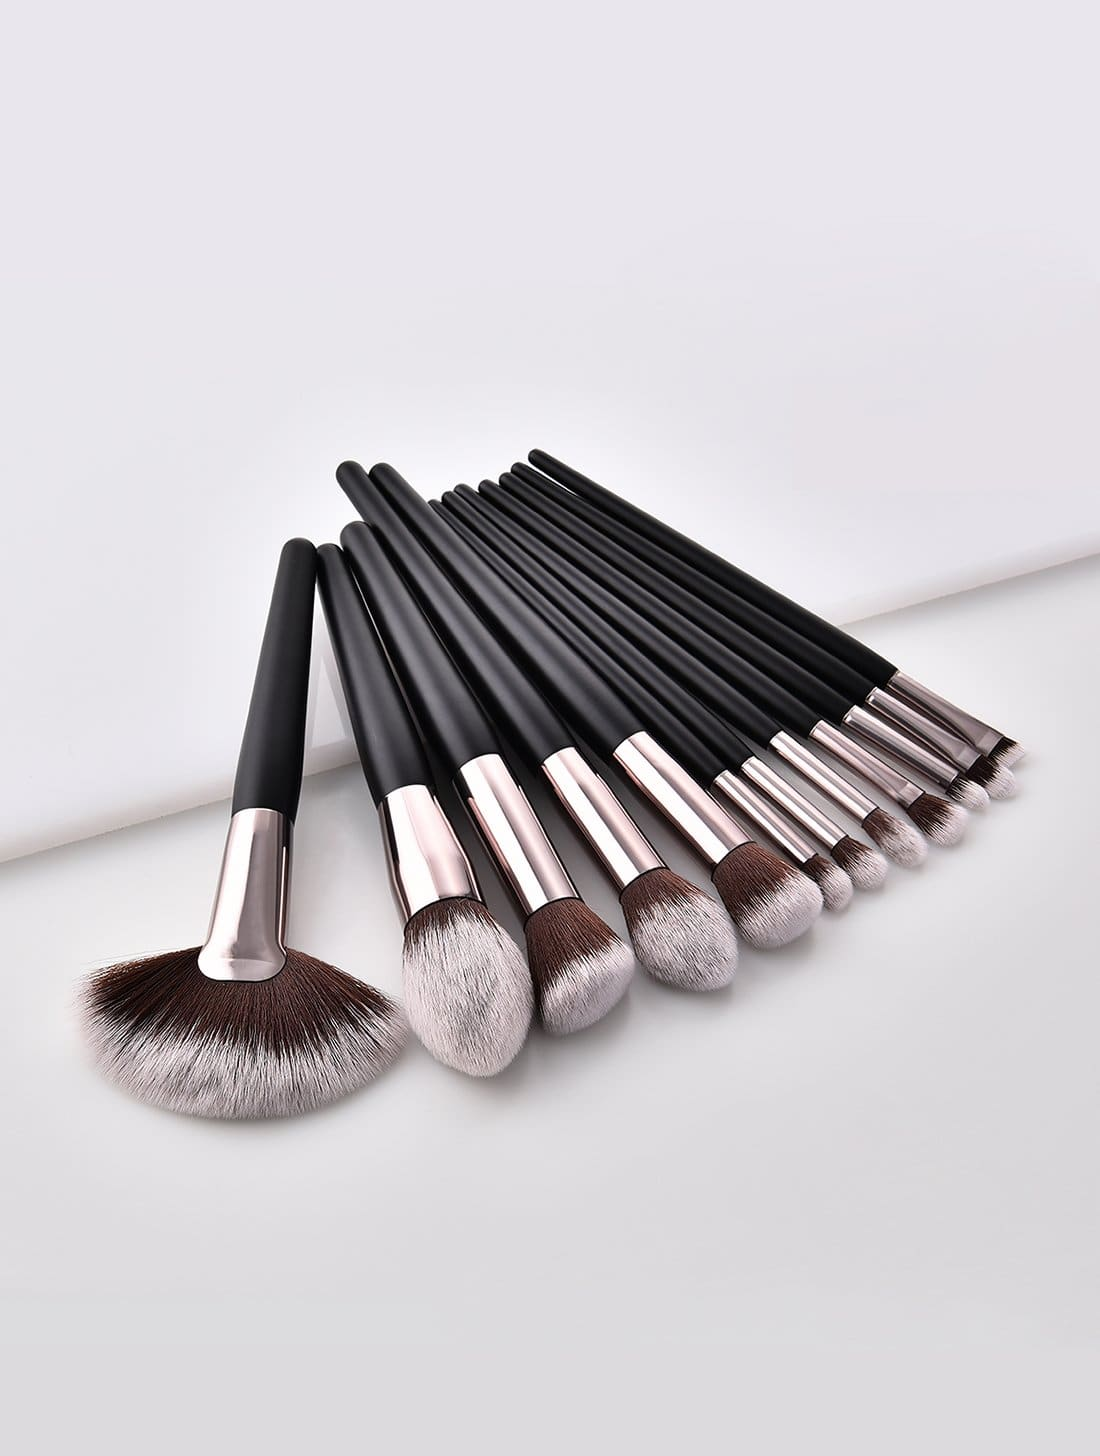 Soft Makeup Brush 12pcs